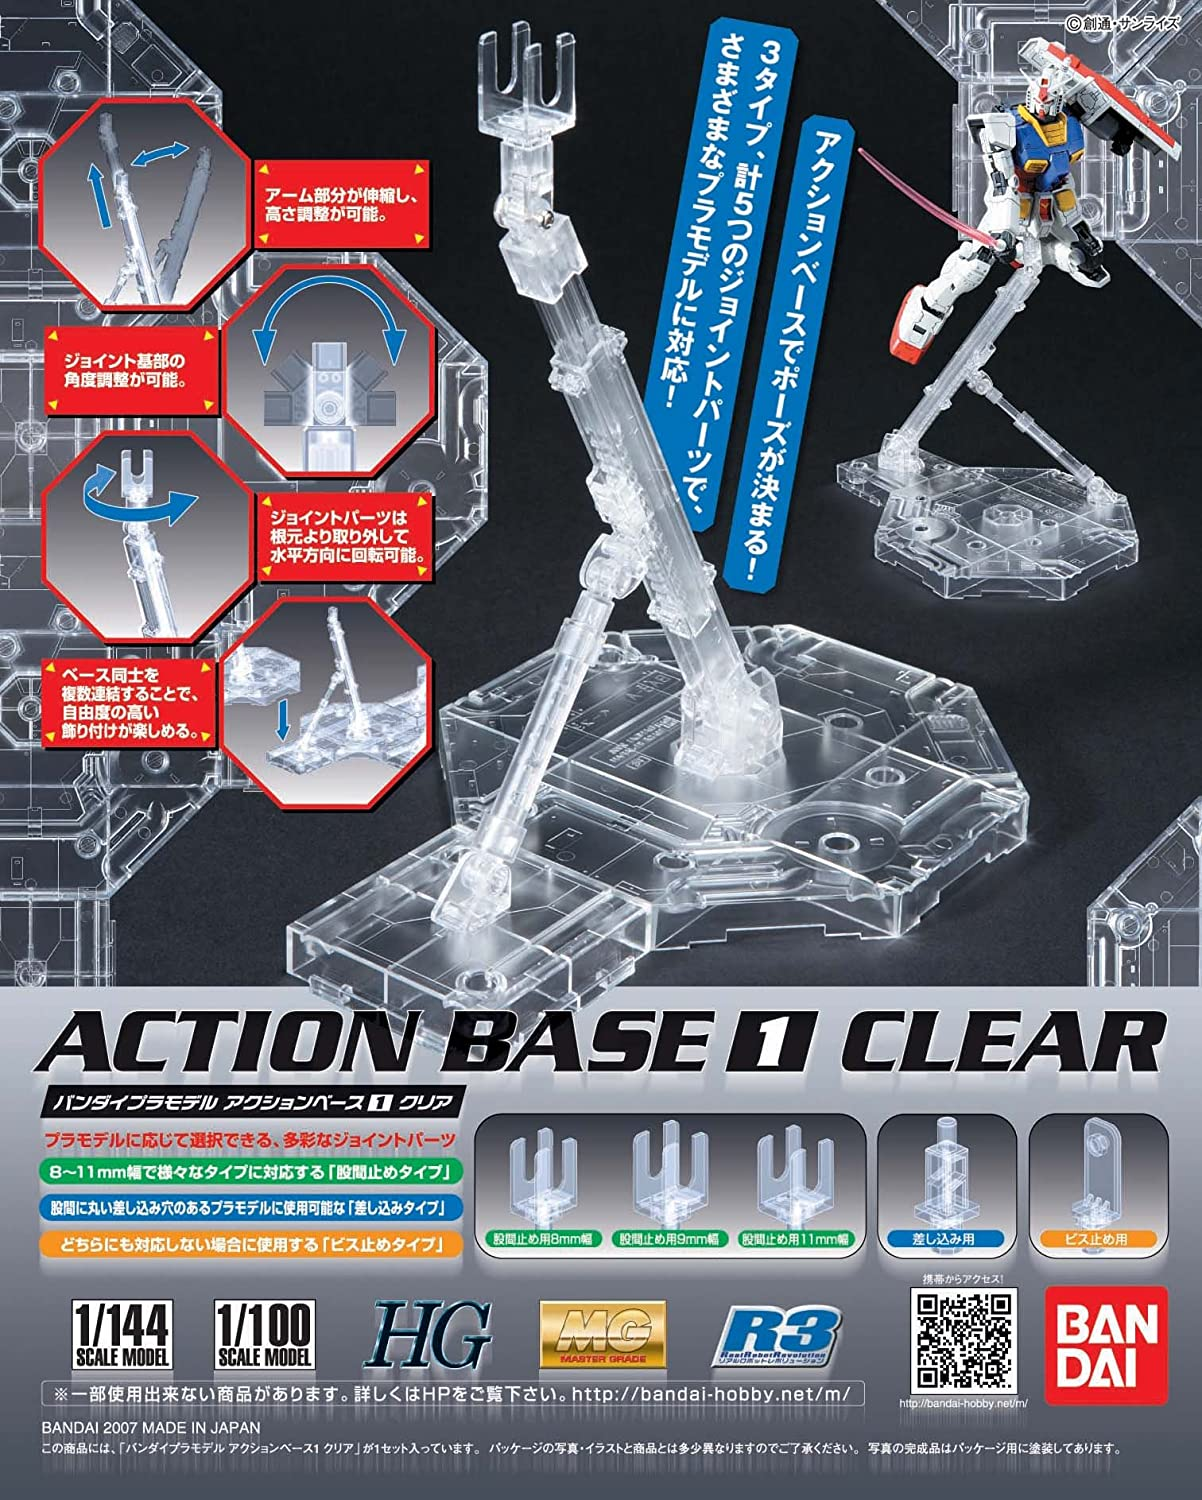 Bandai Hobby Action Base 1 Display Stand Clear 1//100 Scale